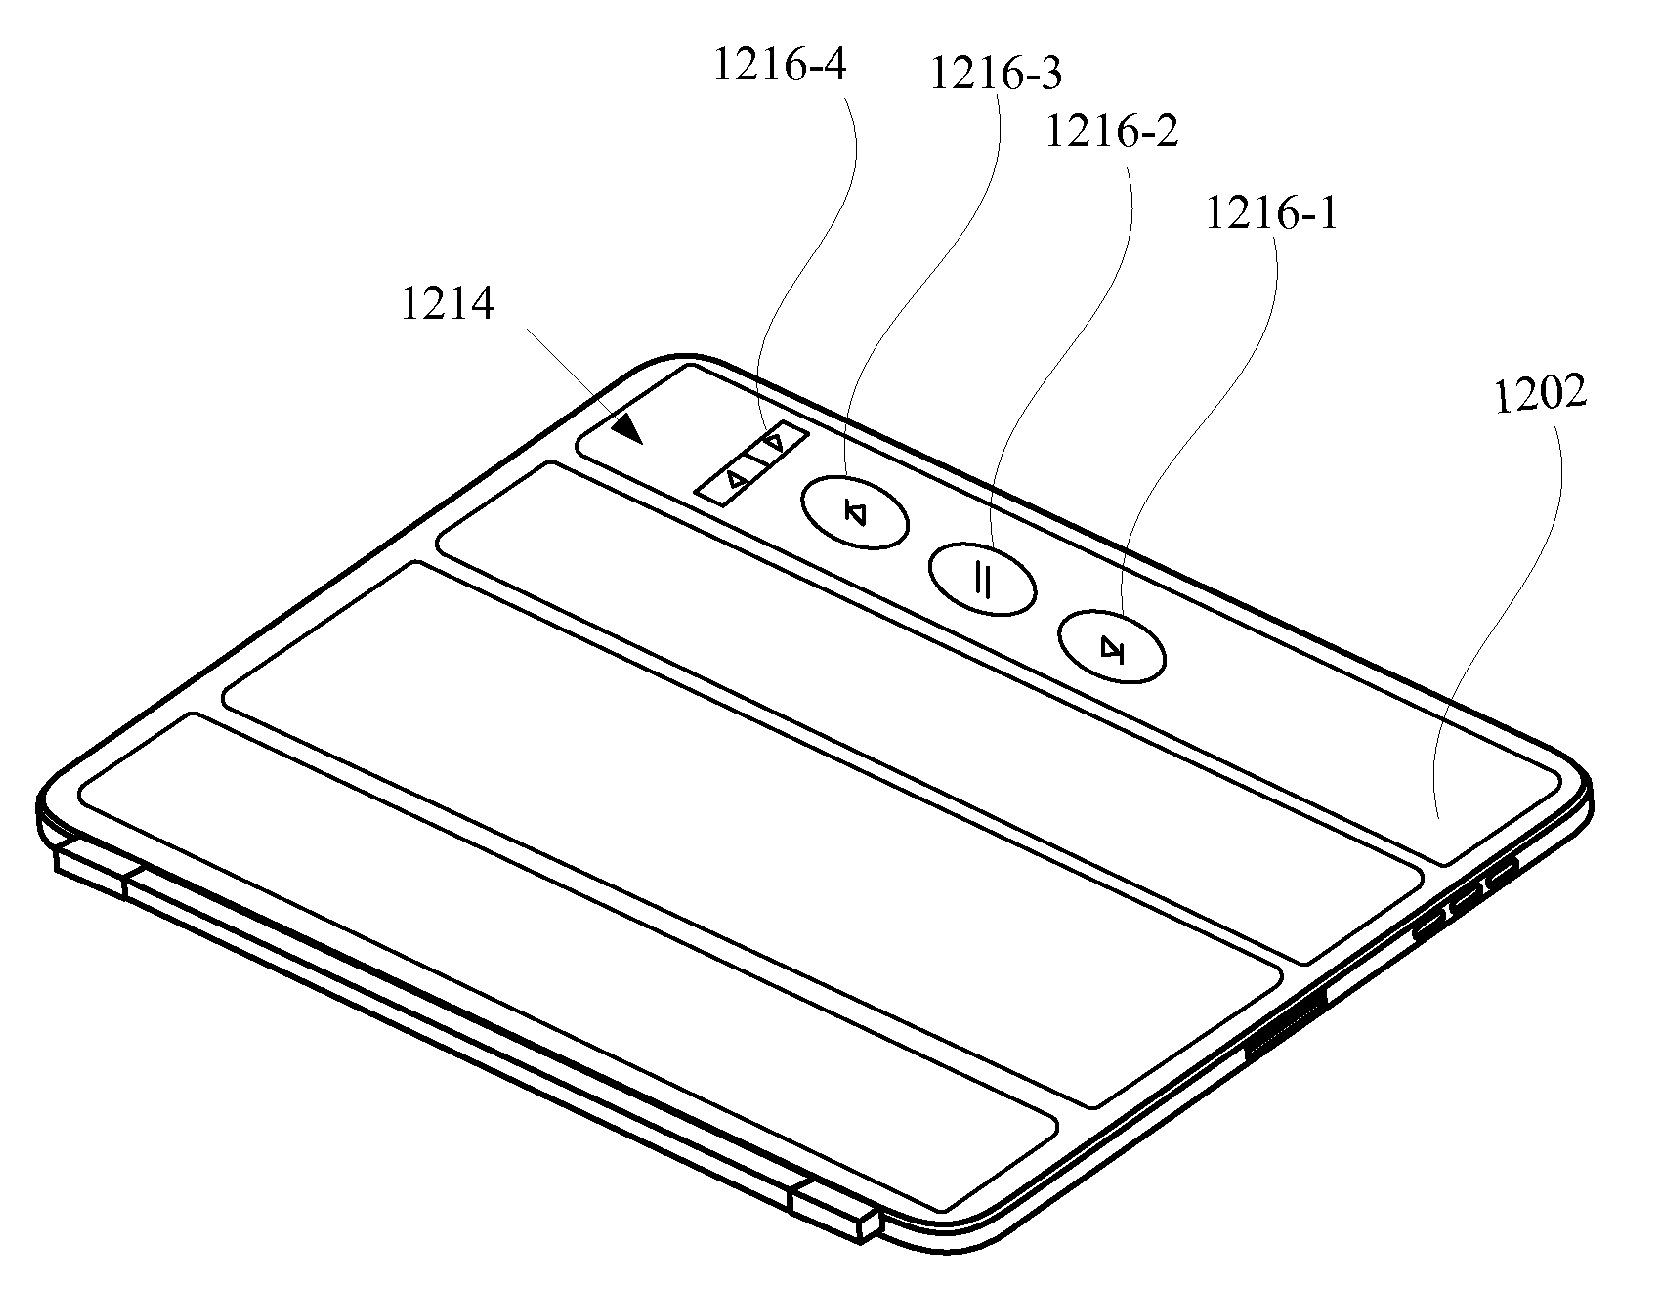 Apple seethrough Smart Cover patent (drawing 002)